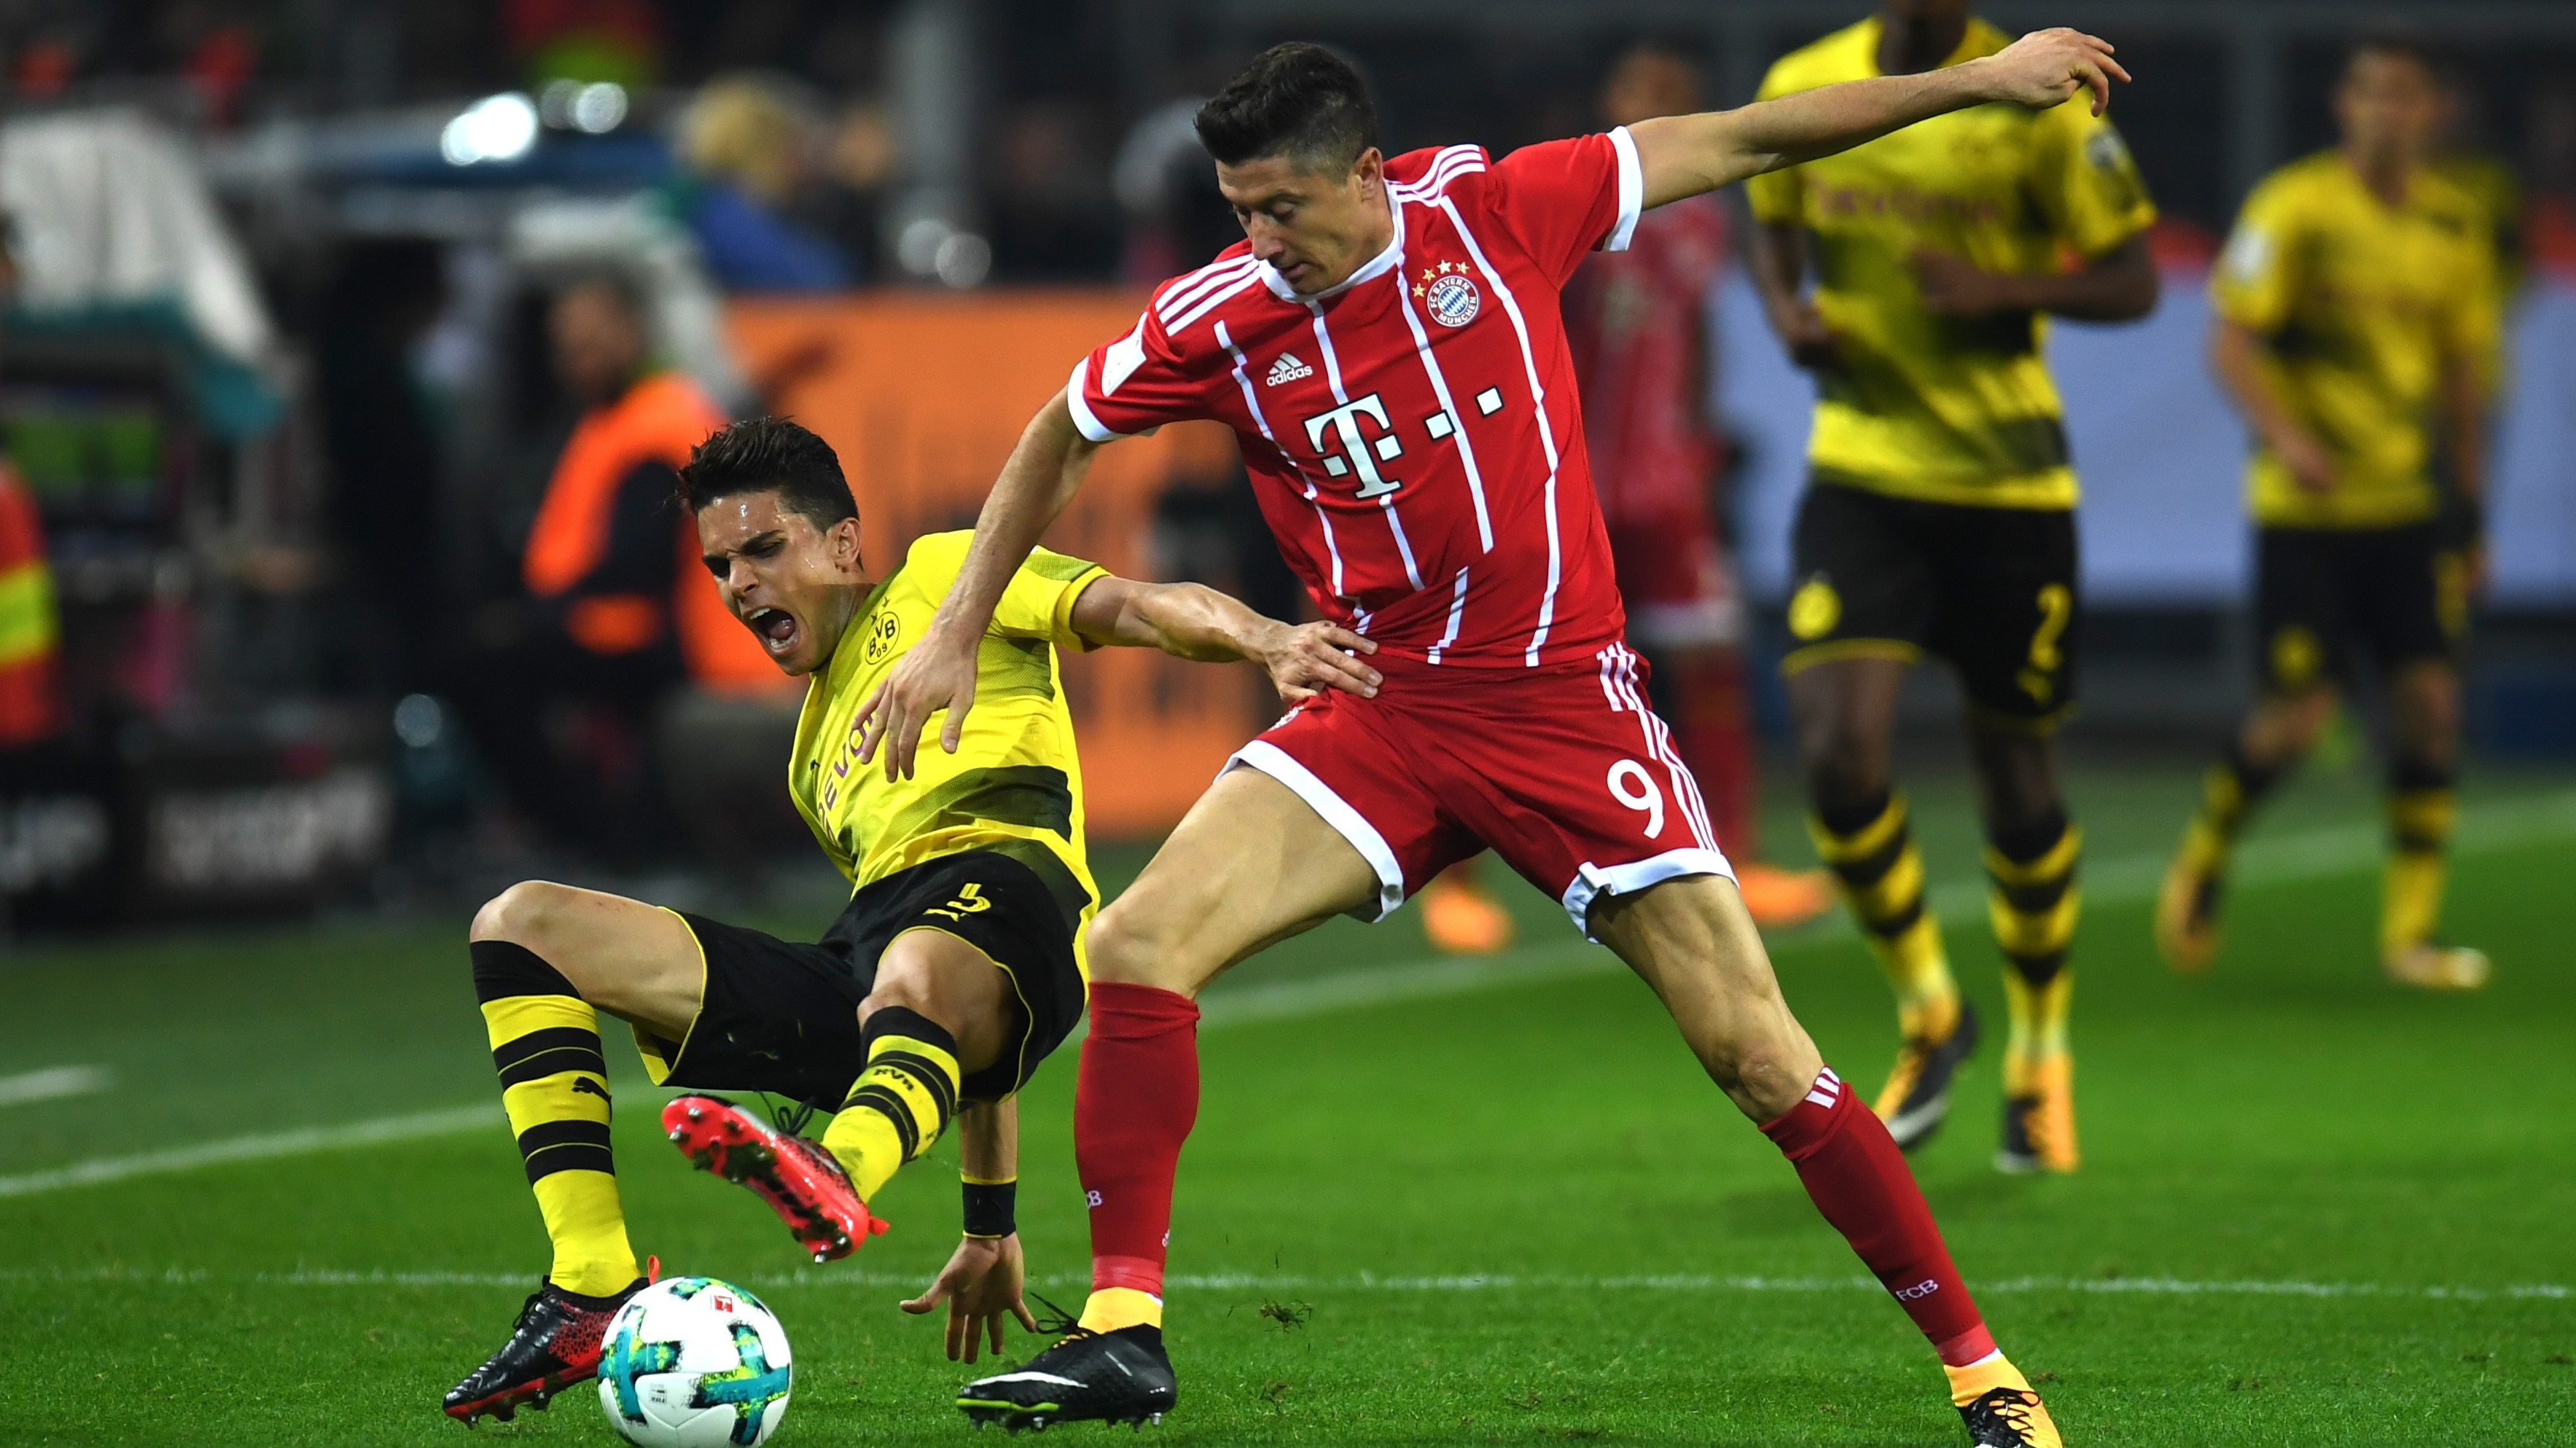 Borussia Dortmund vs Bayern Munich live stream: how to watch today's Bundesliga title clash online